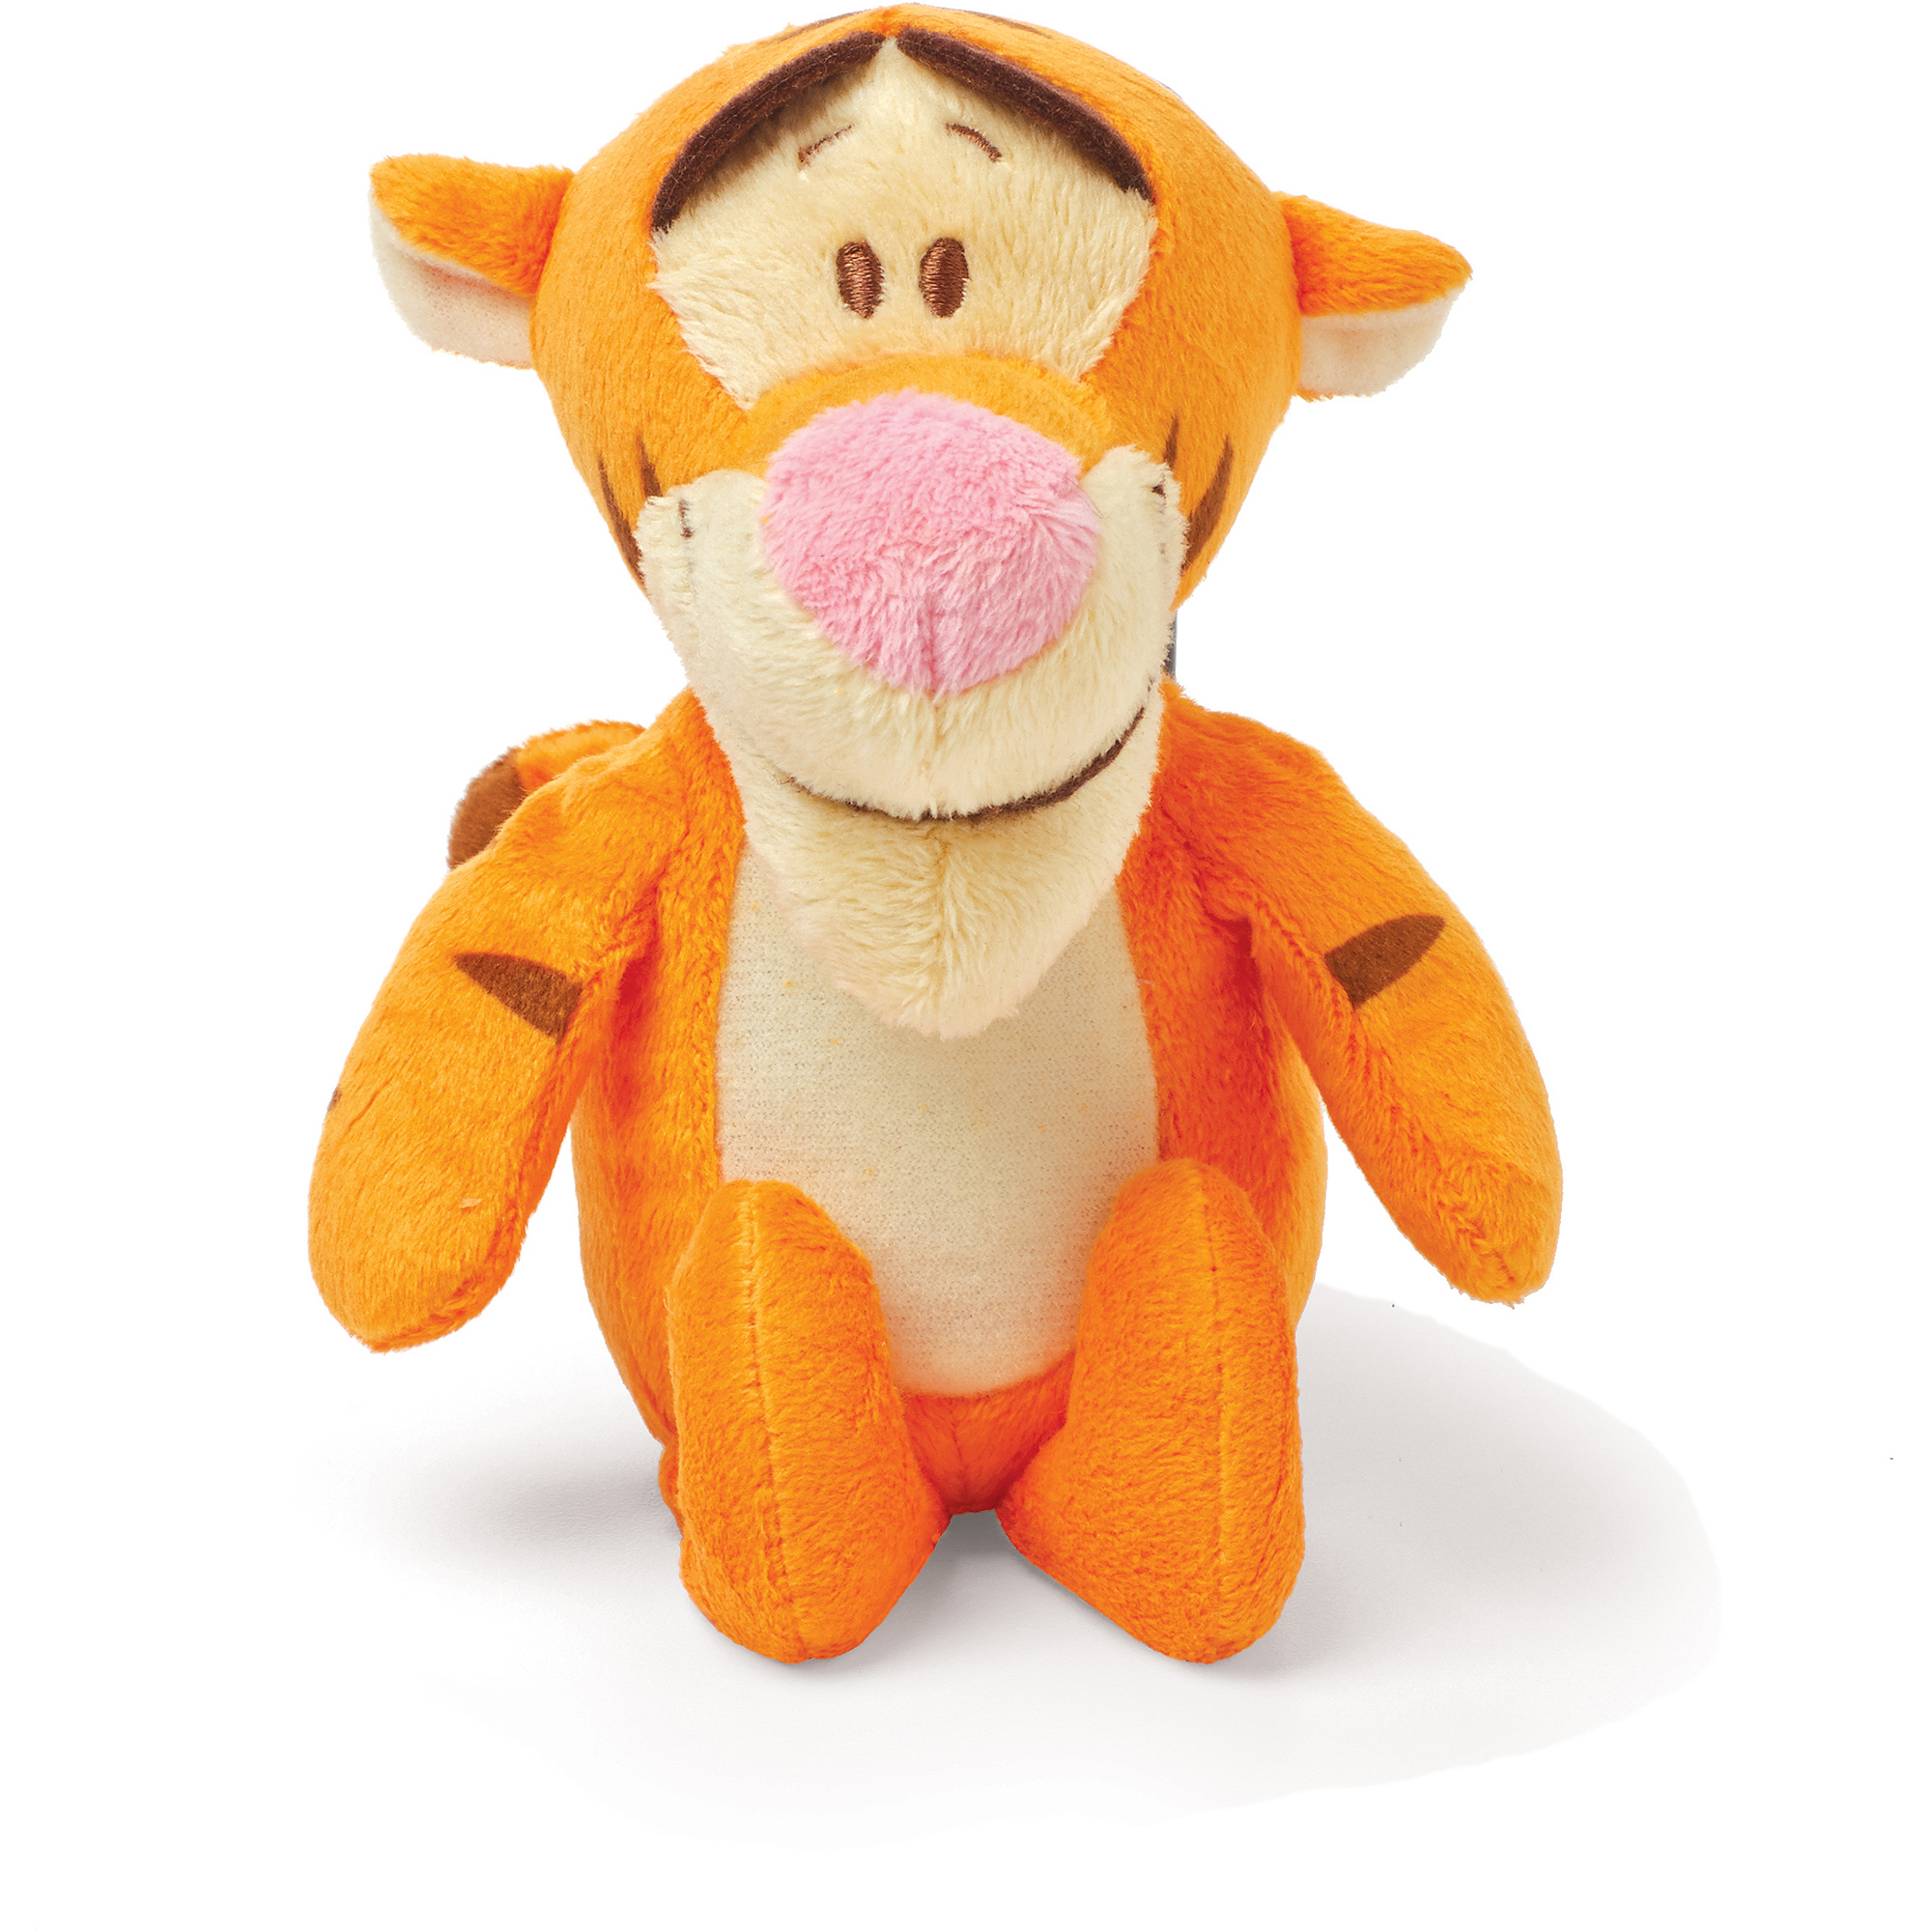 Kids Preferred Disney Baby Mini Jingler, Tigger